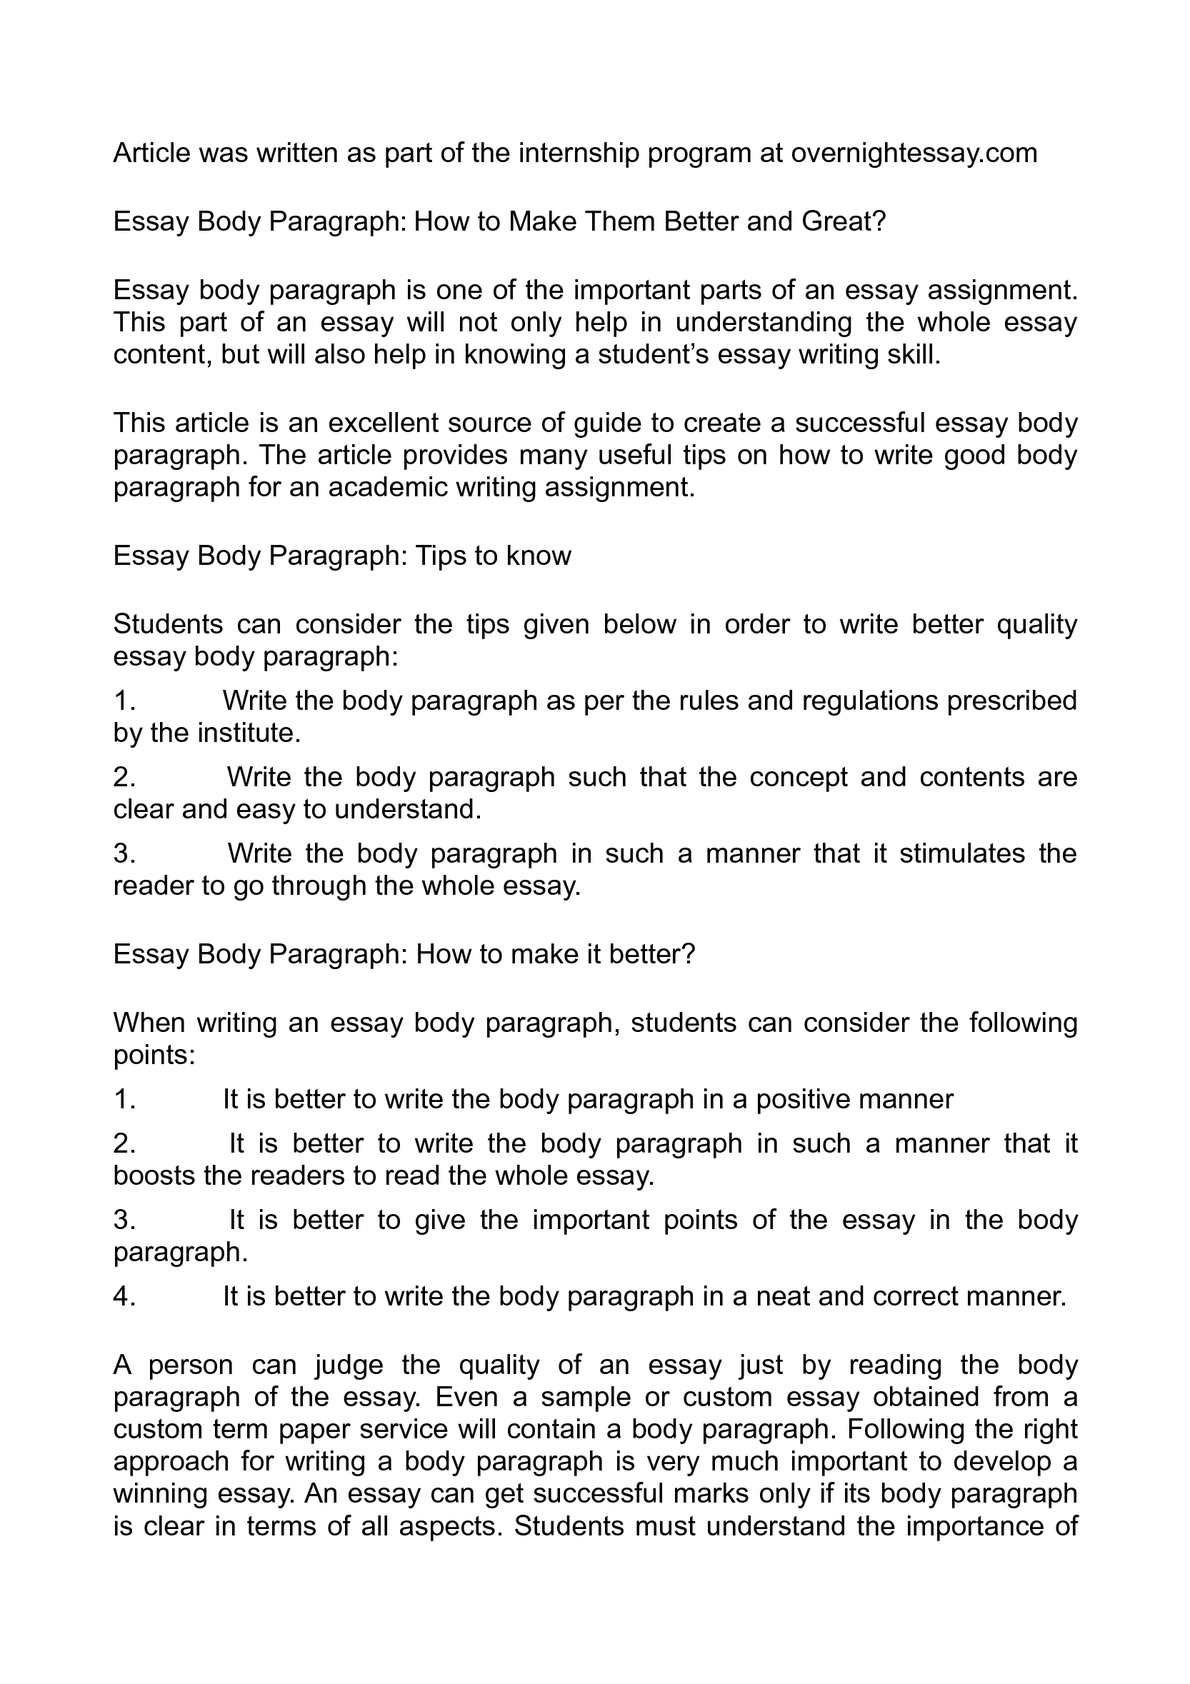 How to write an application essay body paragraph